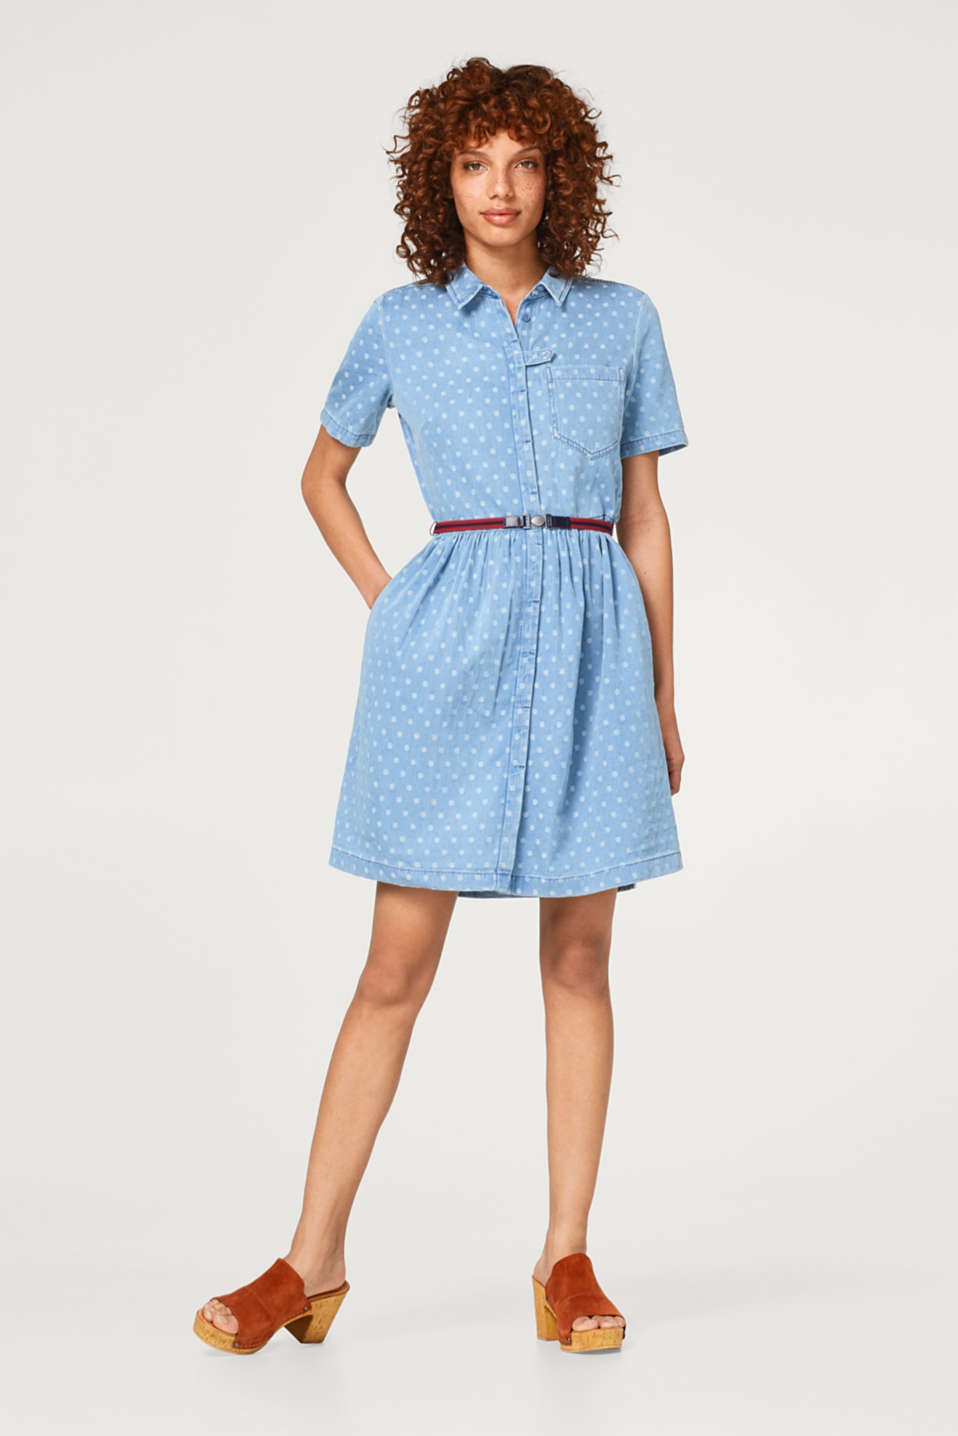 Denim dress with polka dots and a belt, 100% cotton